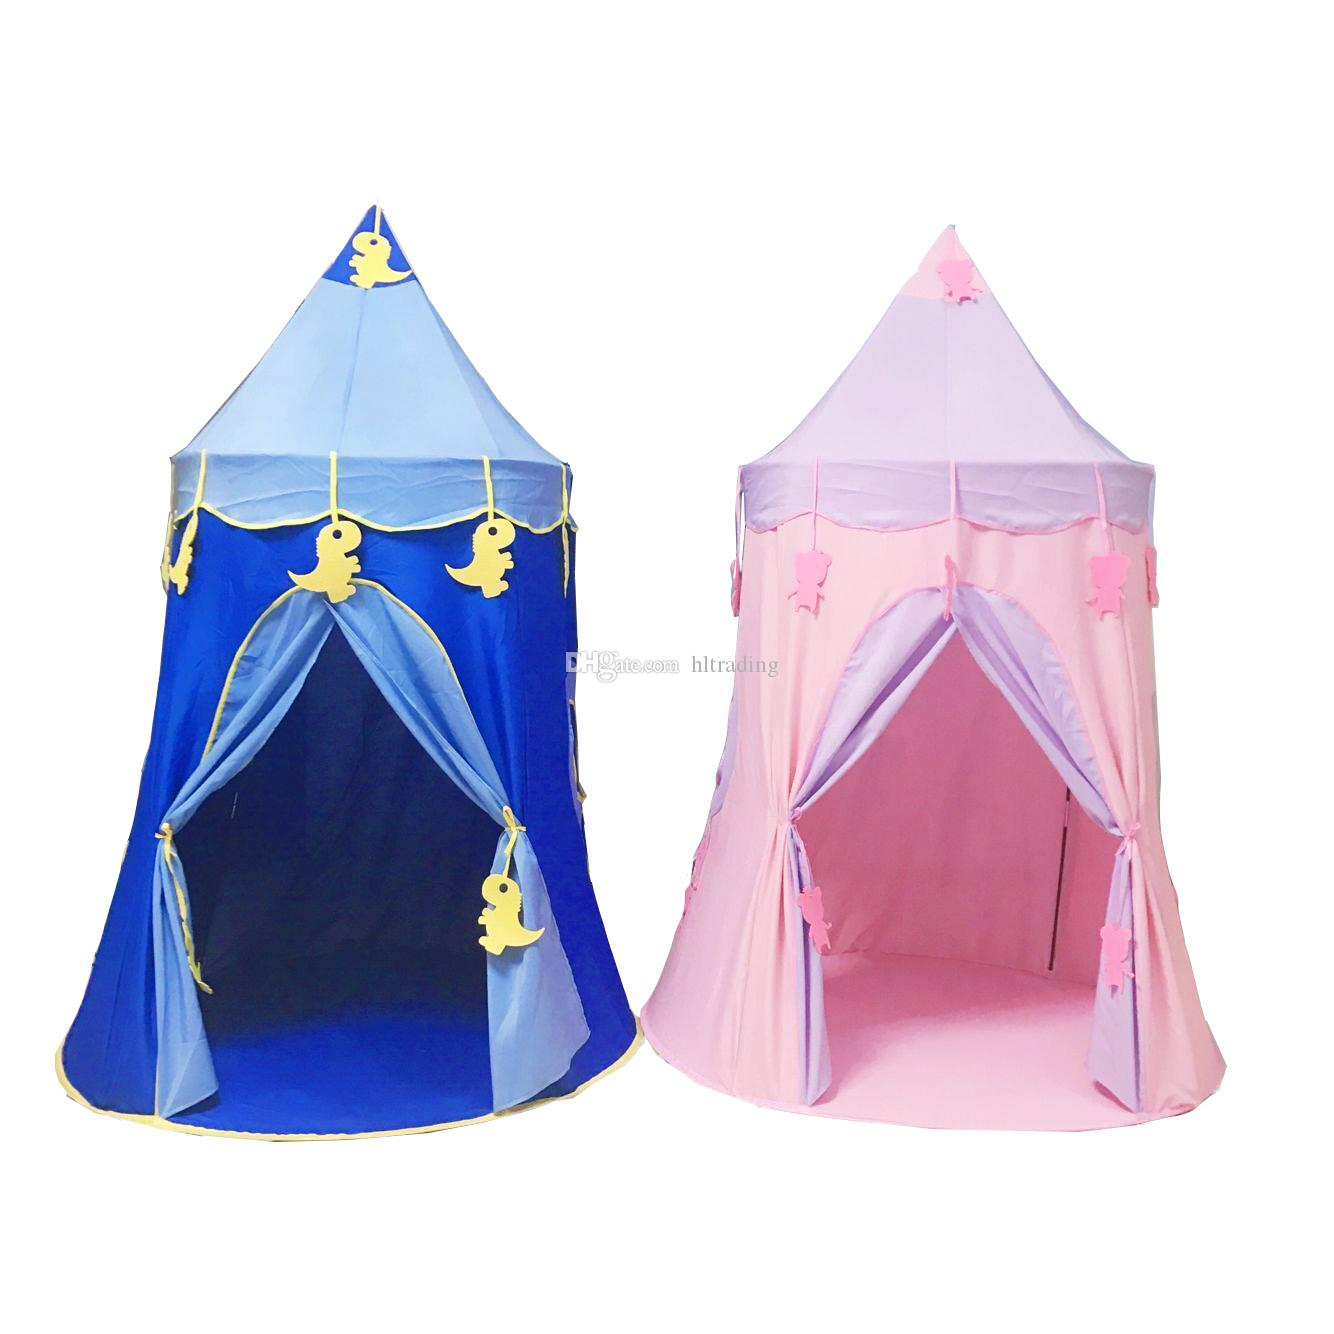 Kids Play Tent Children Kids Play Tents Outdoor Folding Portable Toy Tent Indoor Outdoor Hexagonal Castle Princess Prince Wigwam Yurts C6233